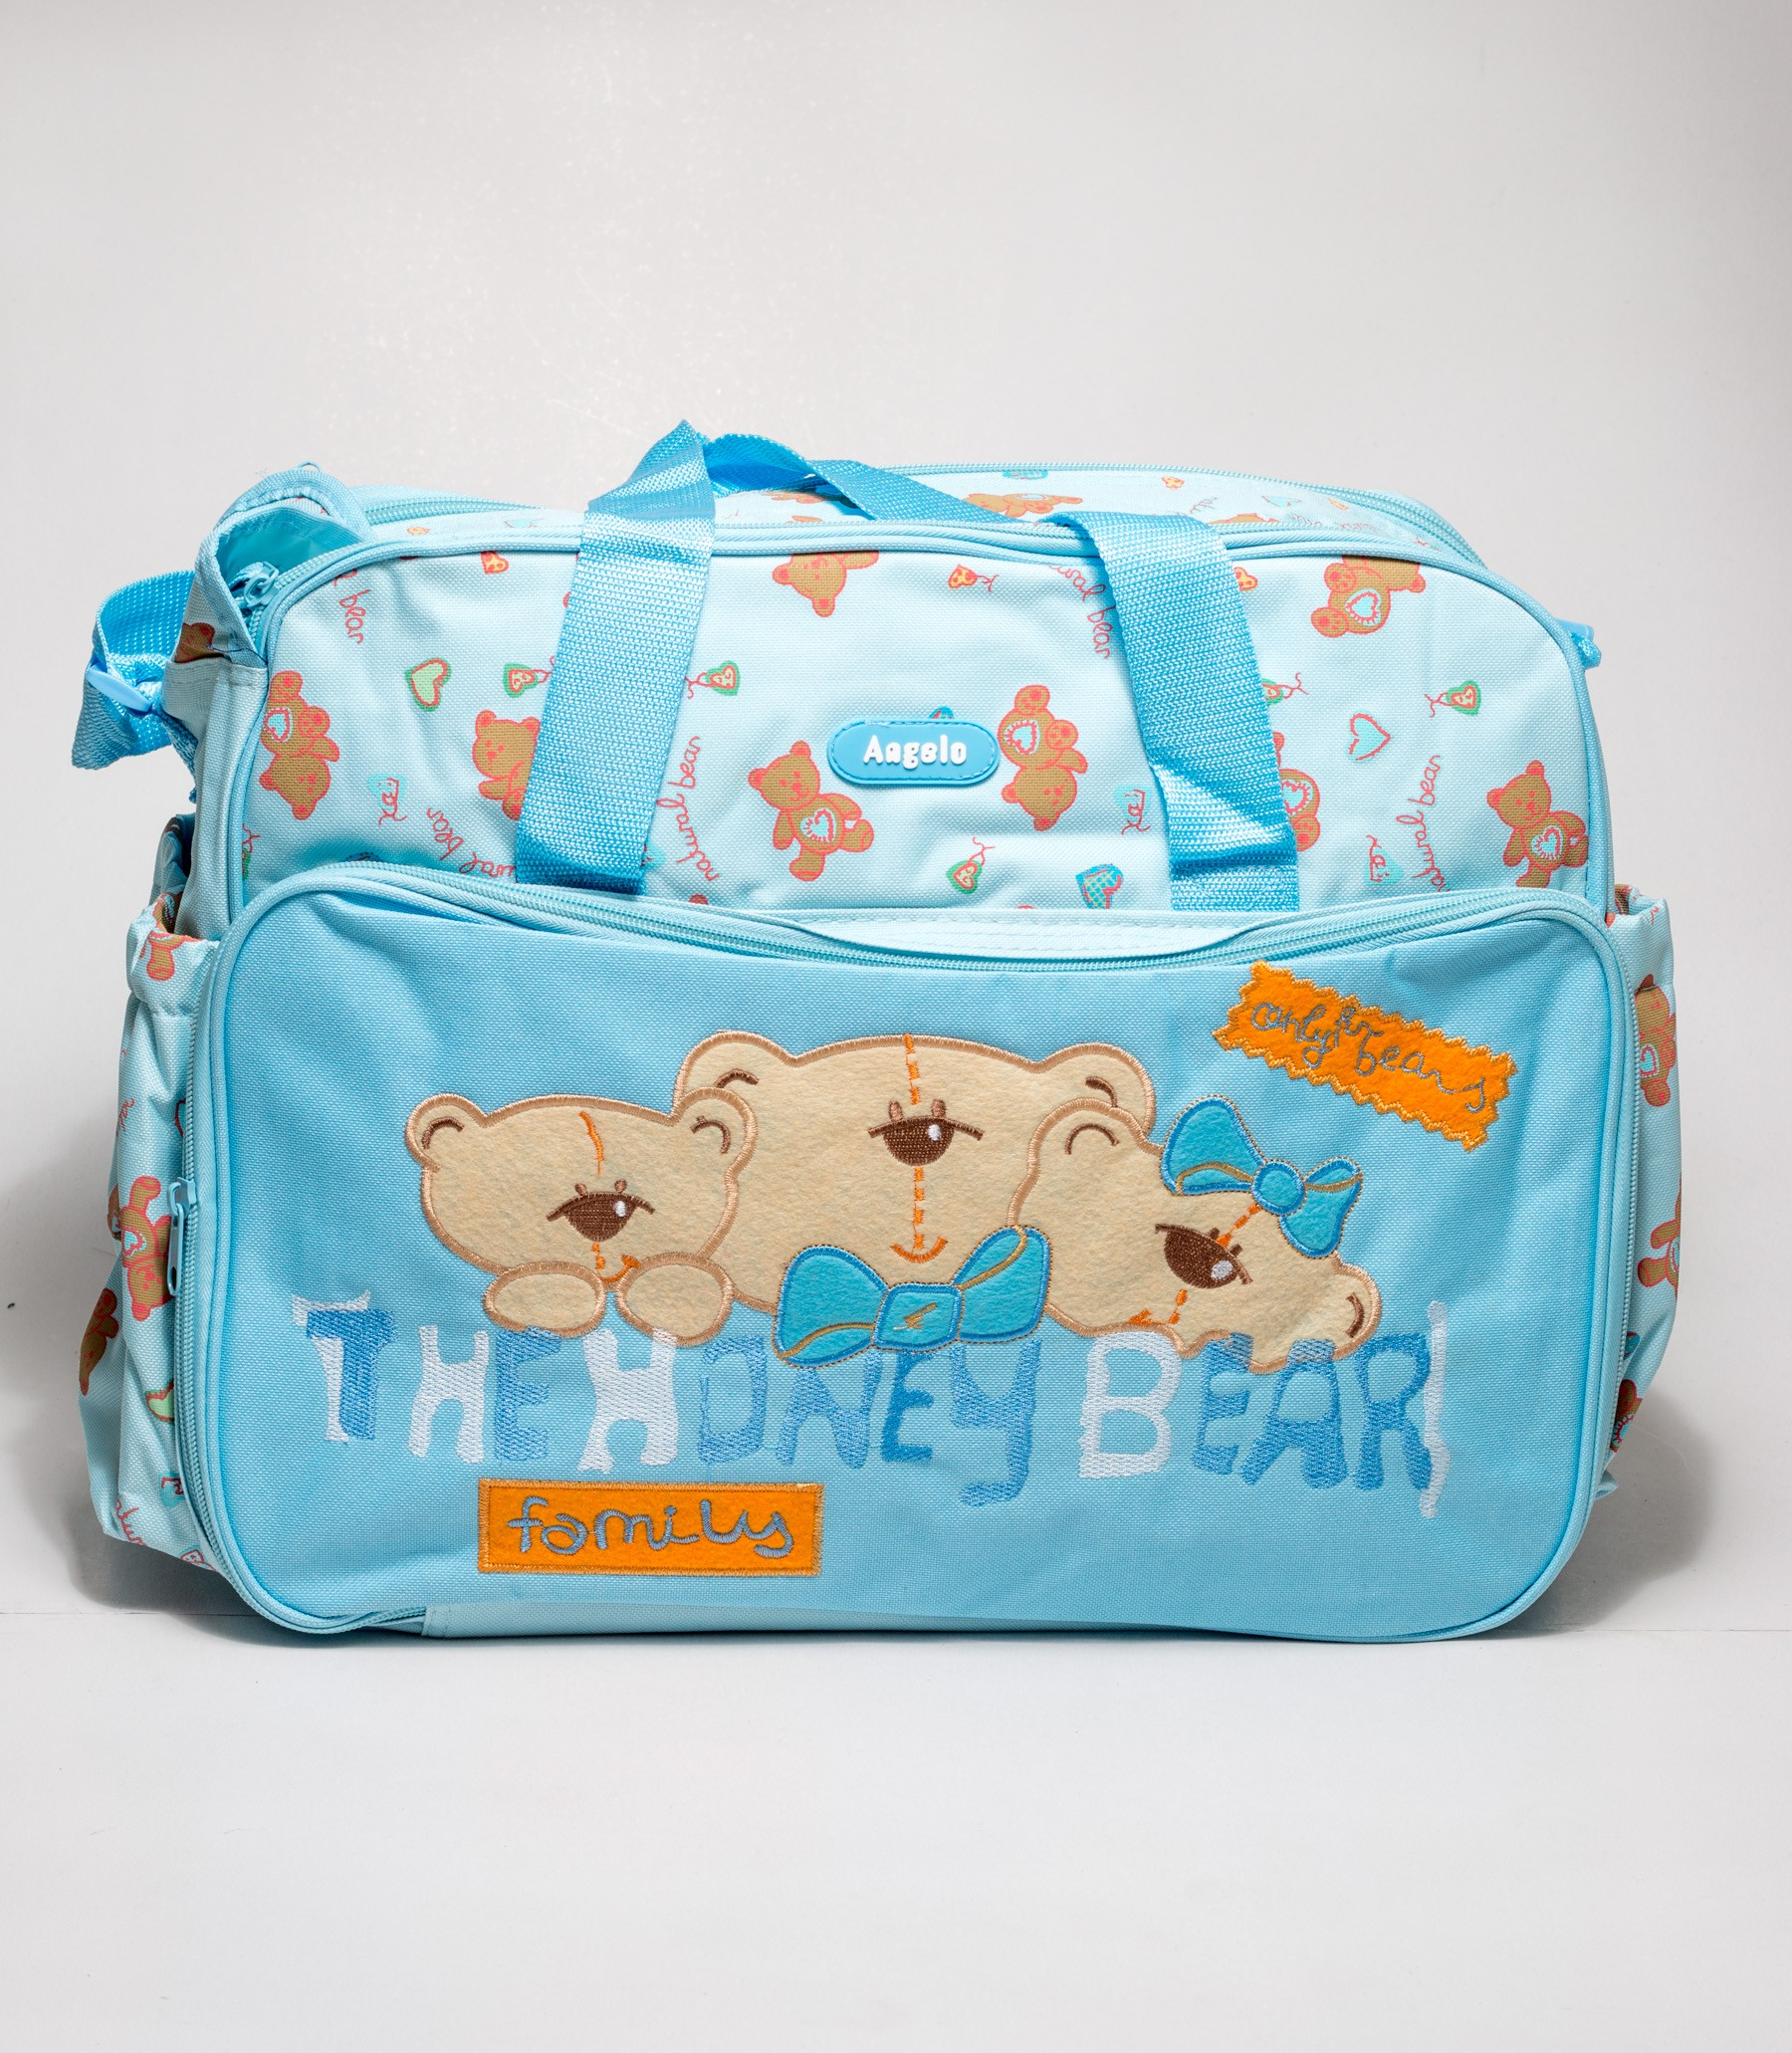 angelo honey bear sky blue baby diaper bags - Baby Diaper Bags